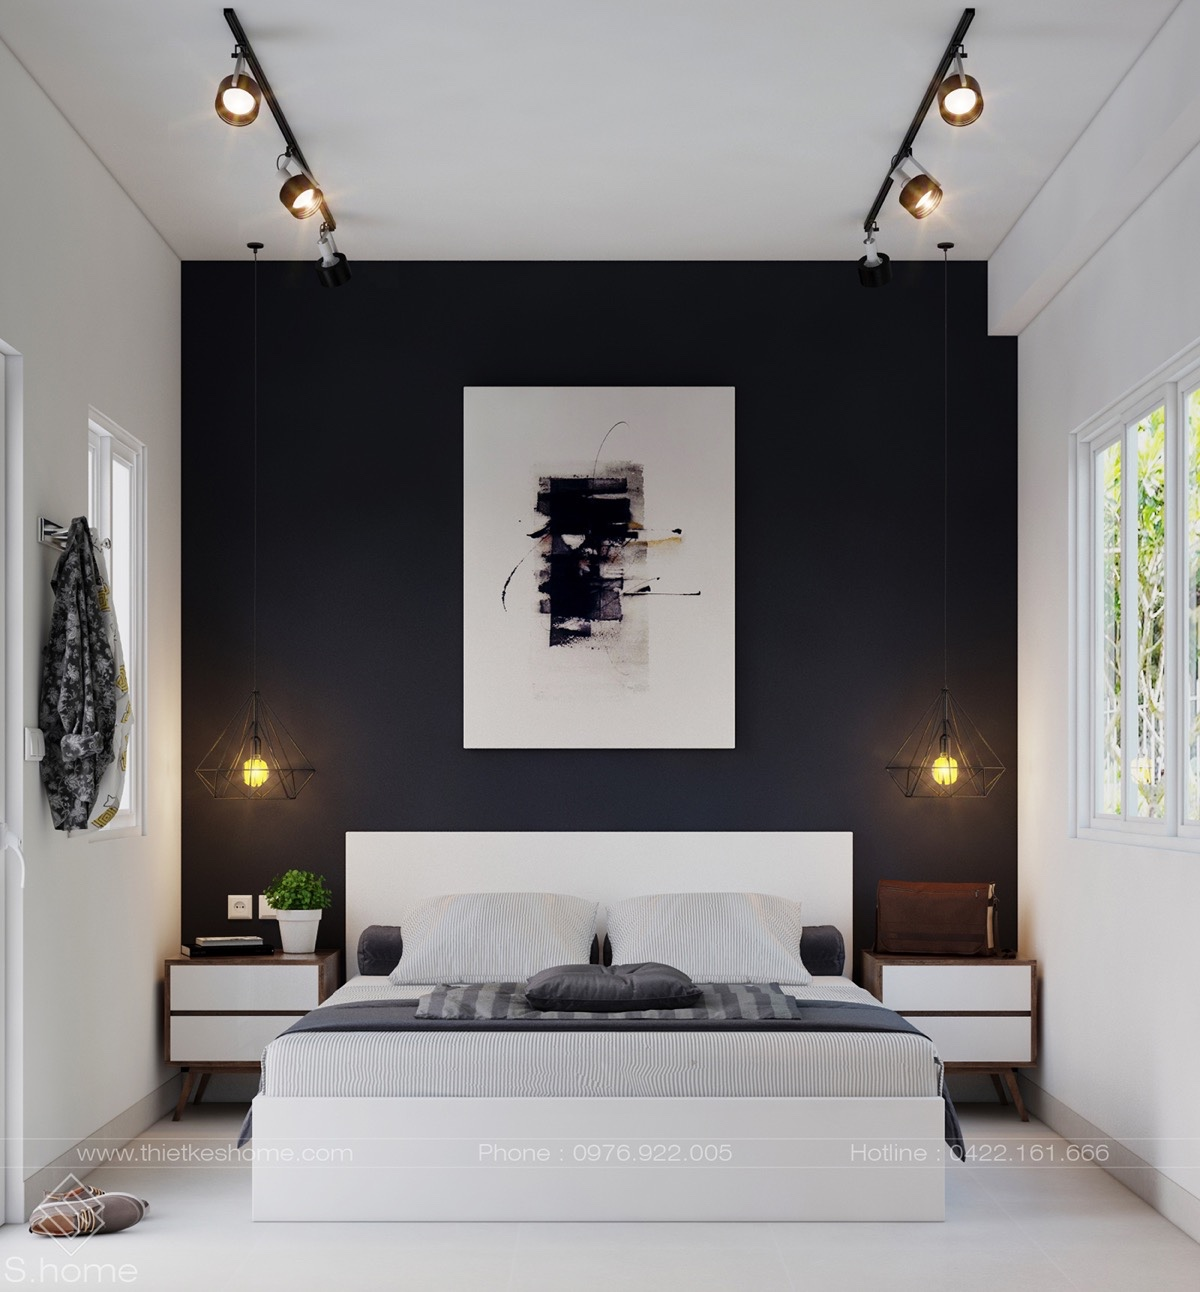 Bedroom Wall Decor Black And White : Beautiful black white bedroom designs